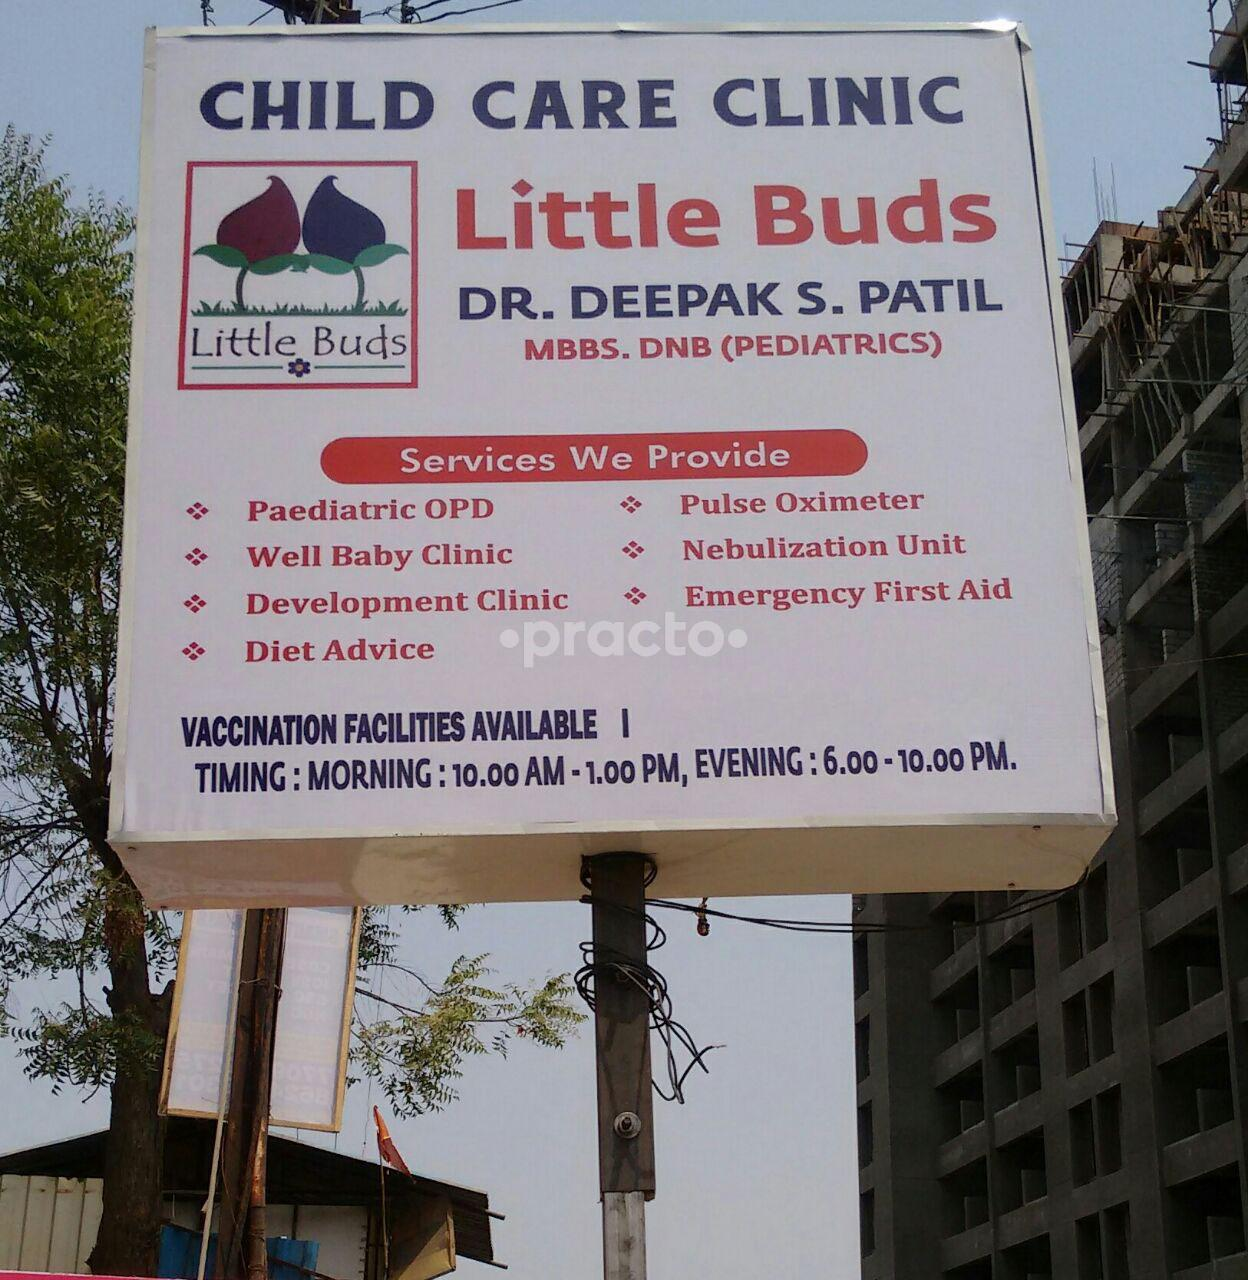 little buds child care clinic pediatrician clinic in undri pune little buds child care clinic pediatrician clinic in undri pune book appointment view fees feedbacks practo